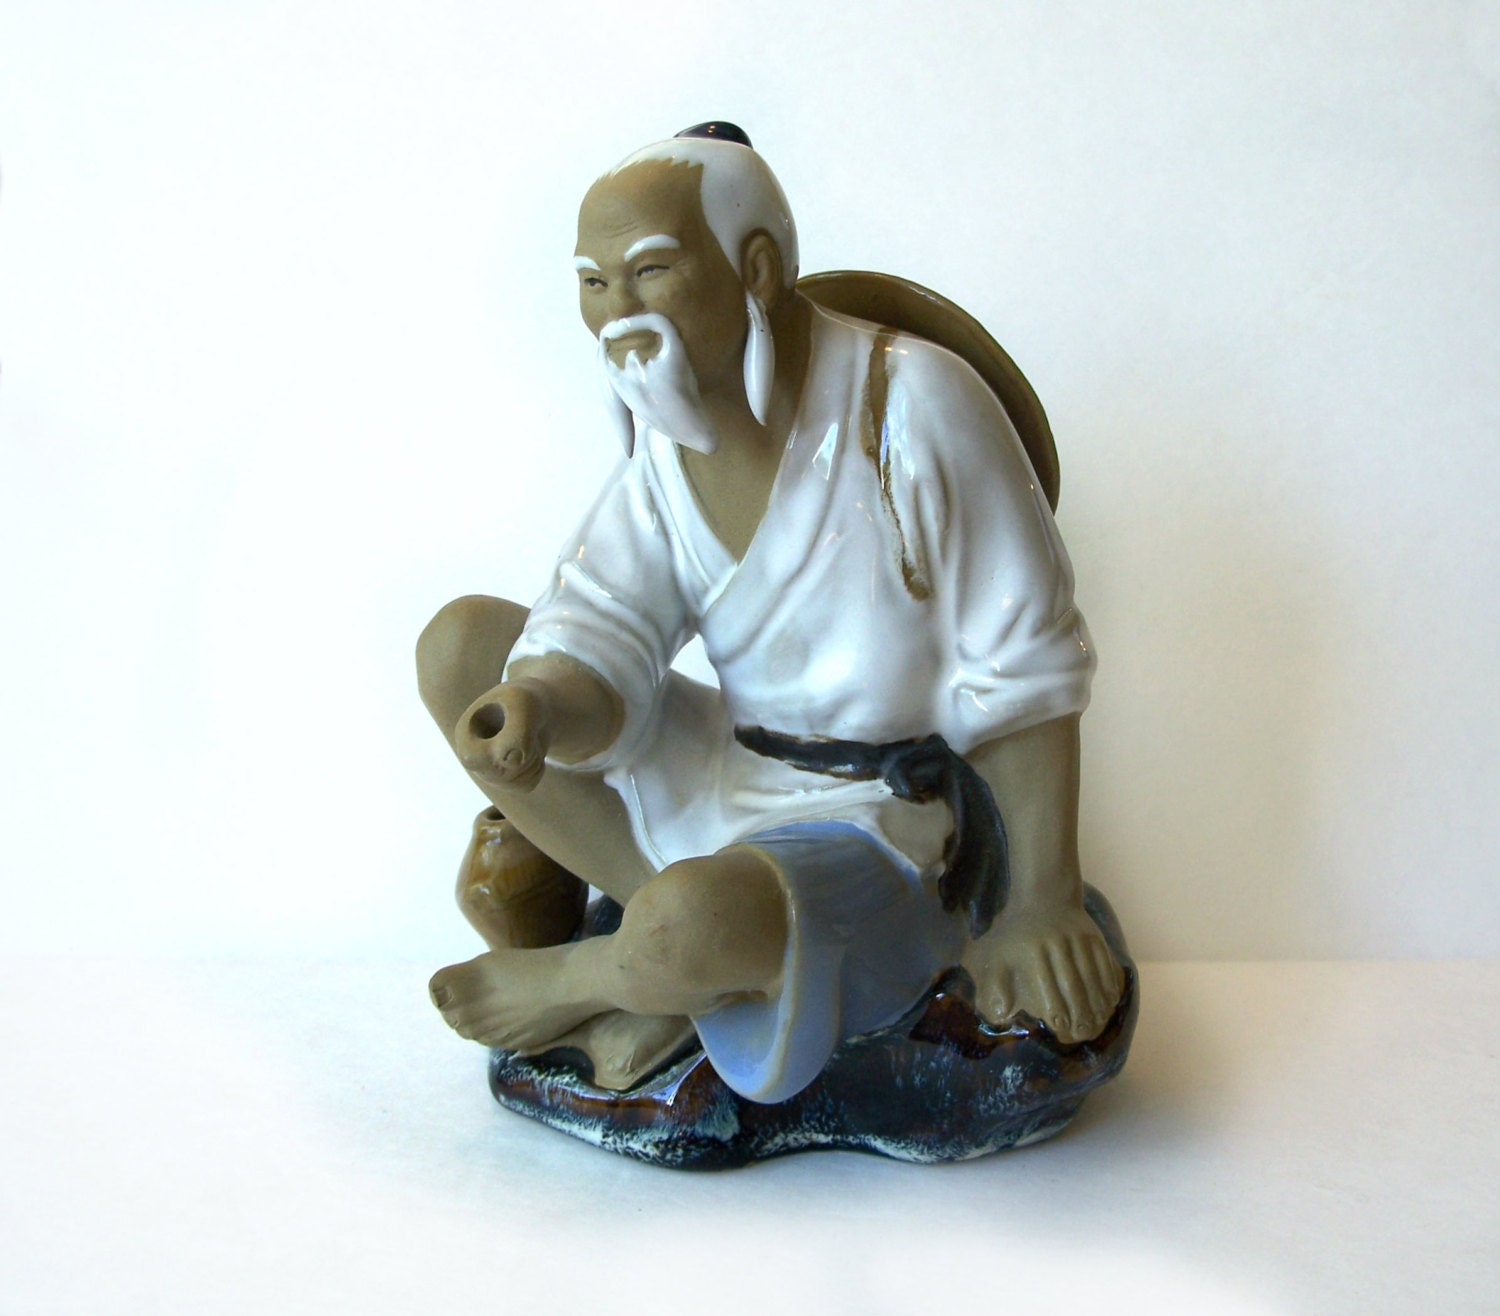 Unique Bookends Vintage Chinese Mud Man Fisherman Figurine Wanjiang China